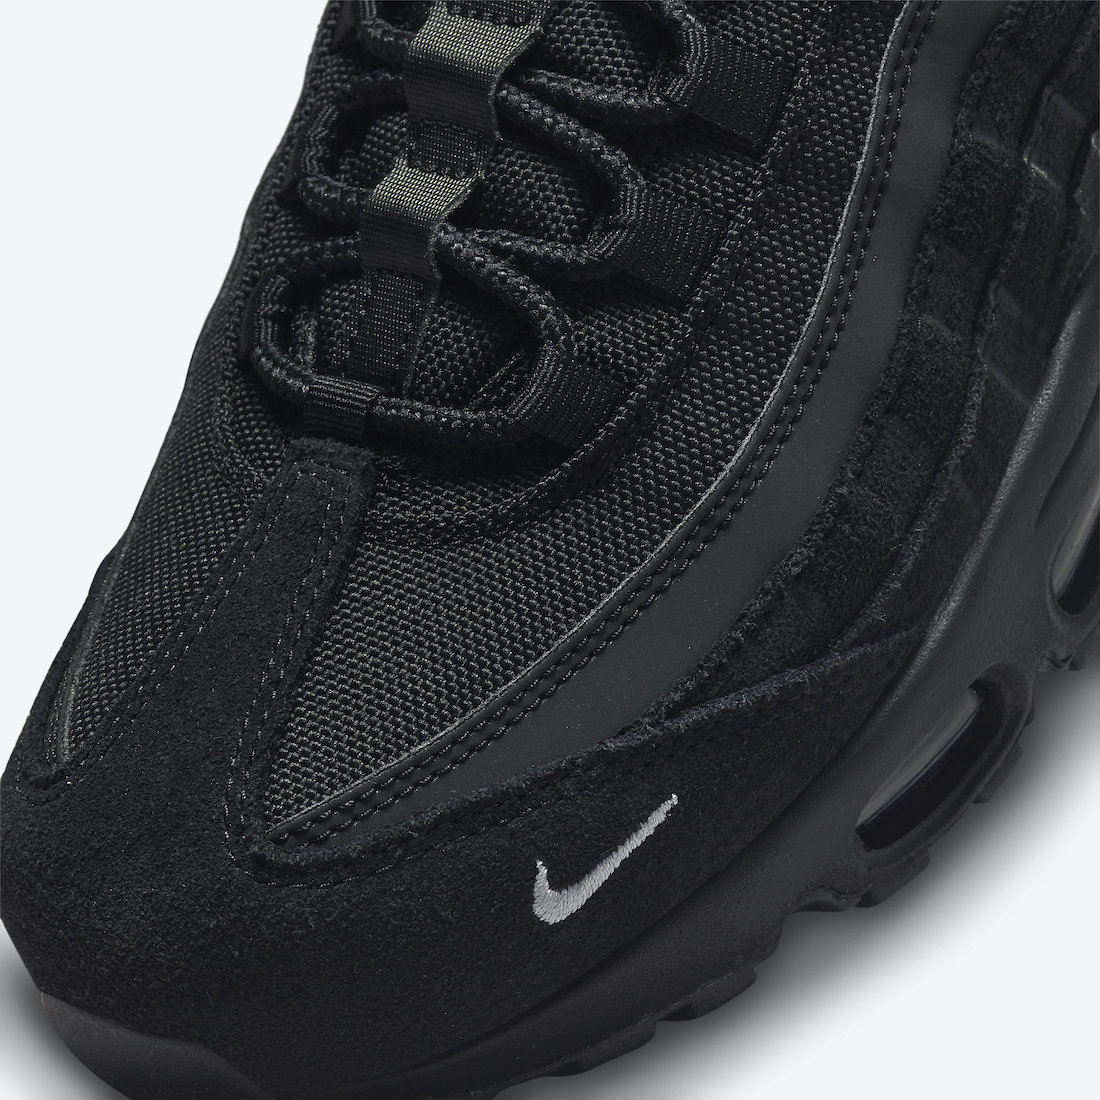 Nike Air Max 95 Black Yellow DO6704-001 Release Date